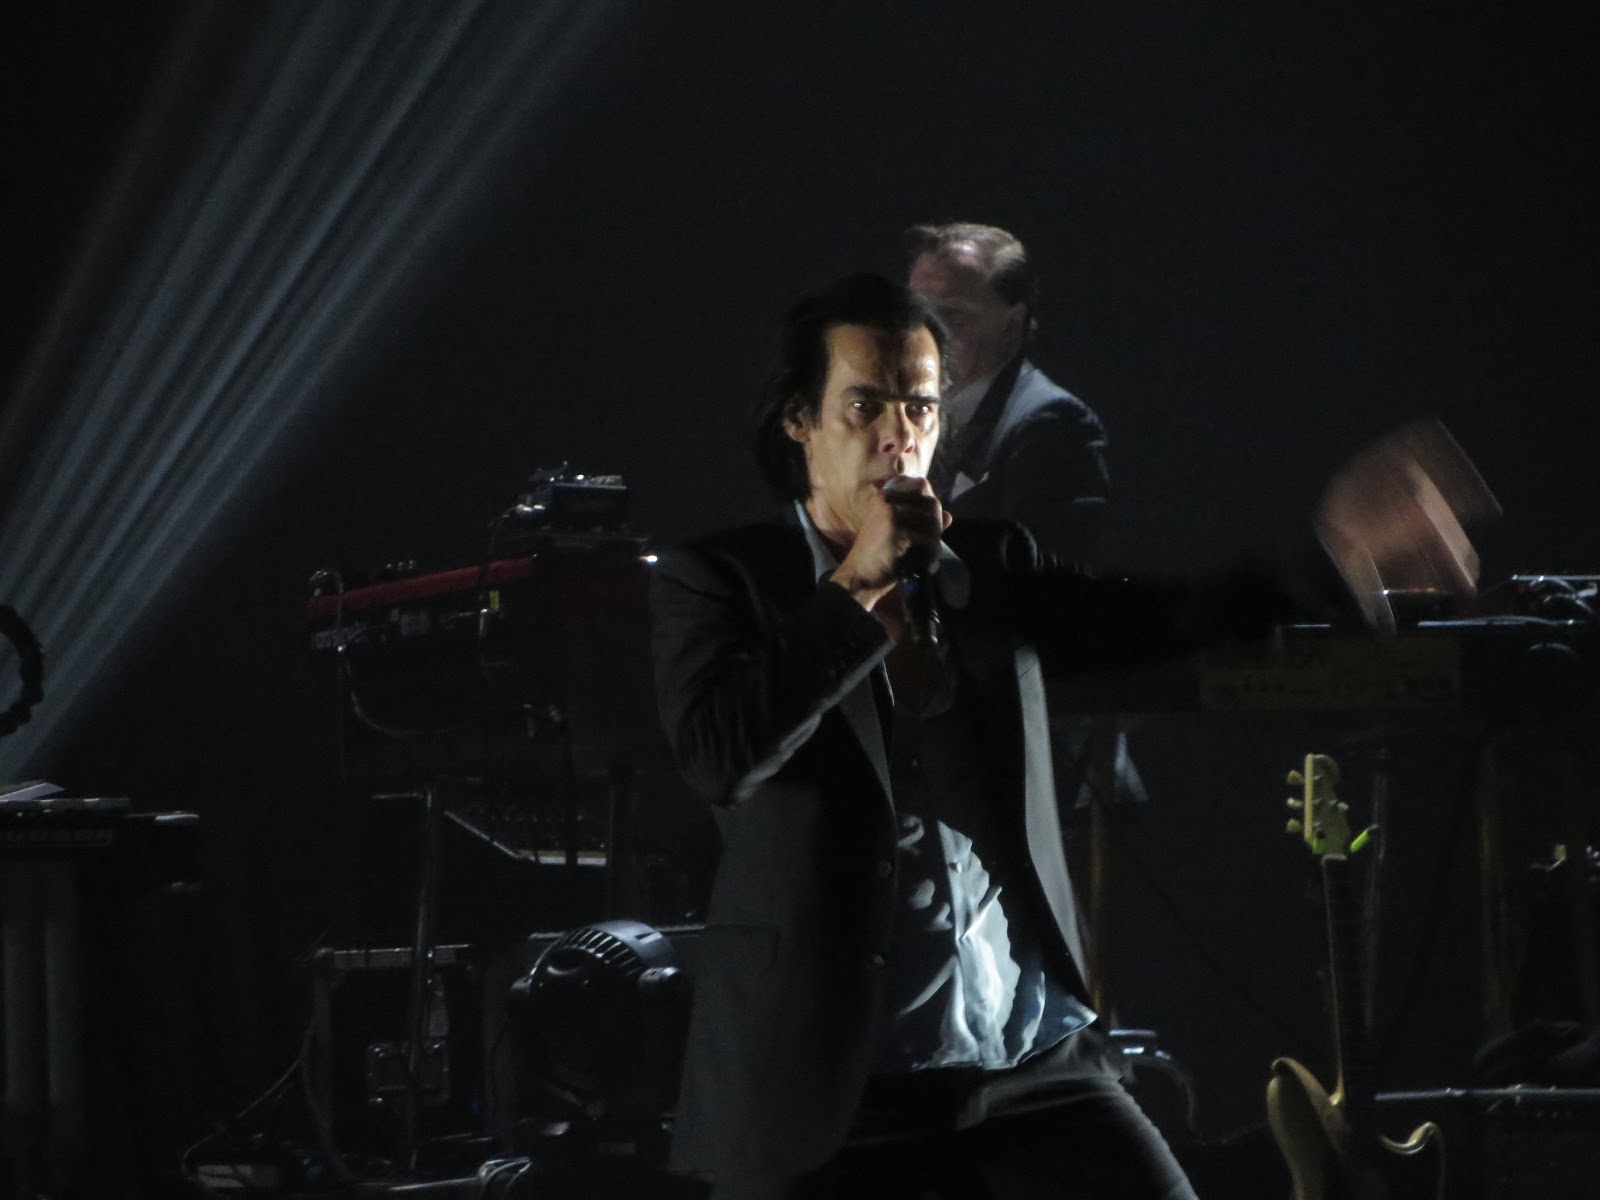 ronald says memoirs of a music addict on stage nick cave u0026 the